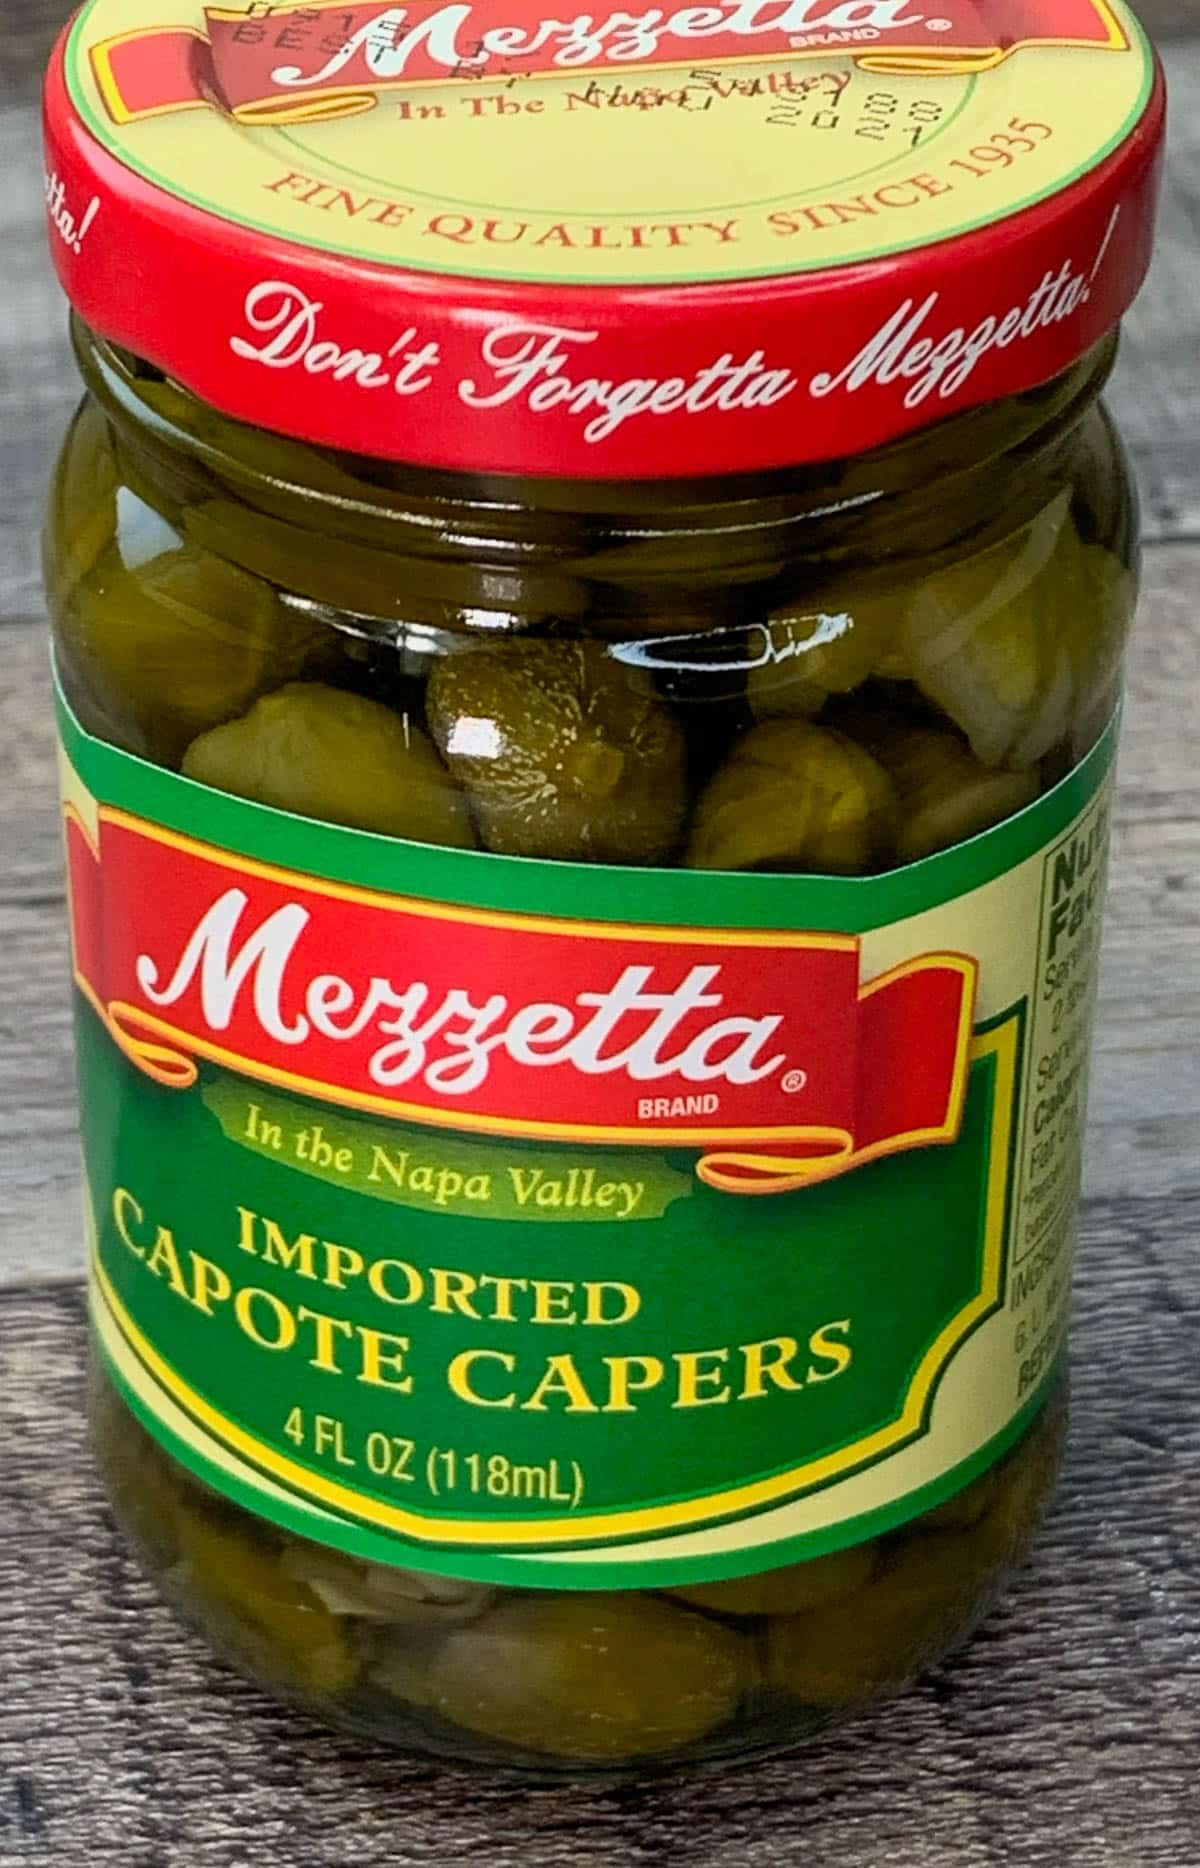 capers in a jar